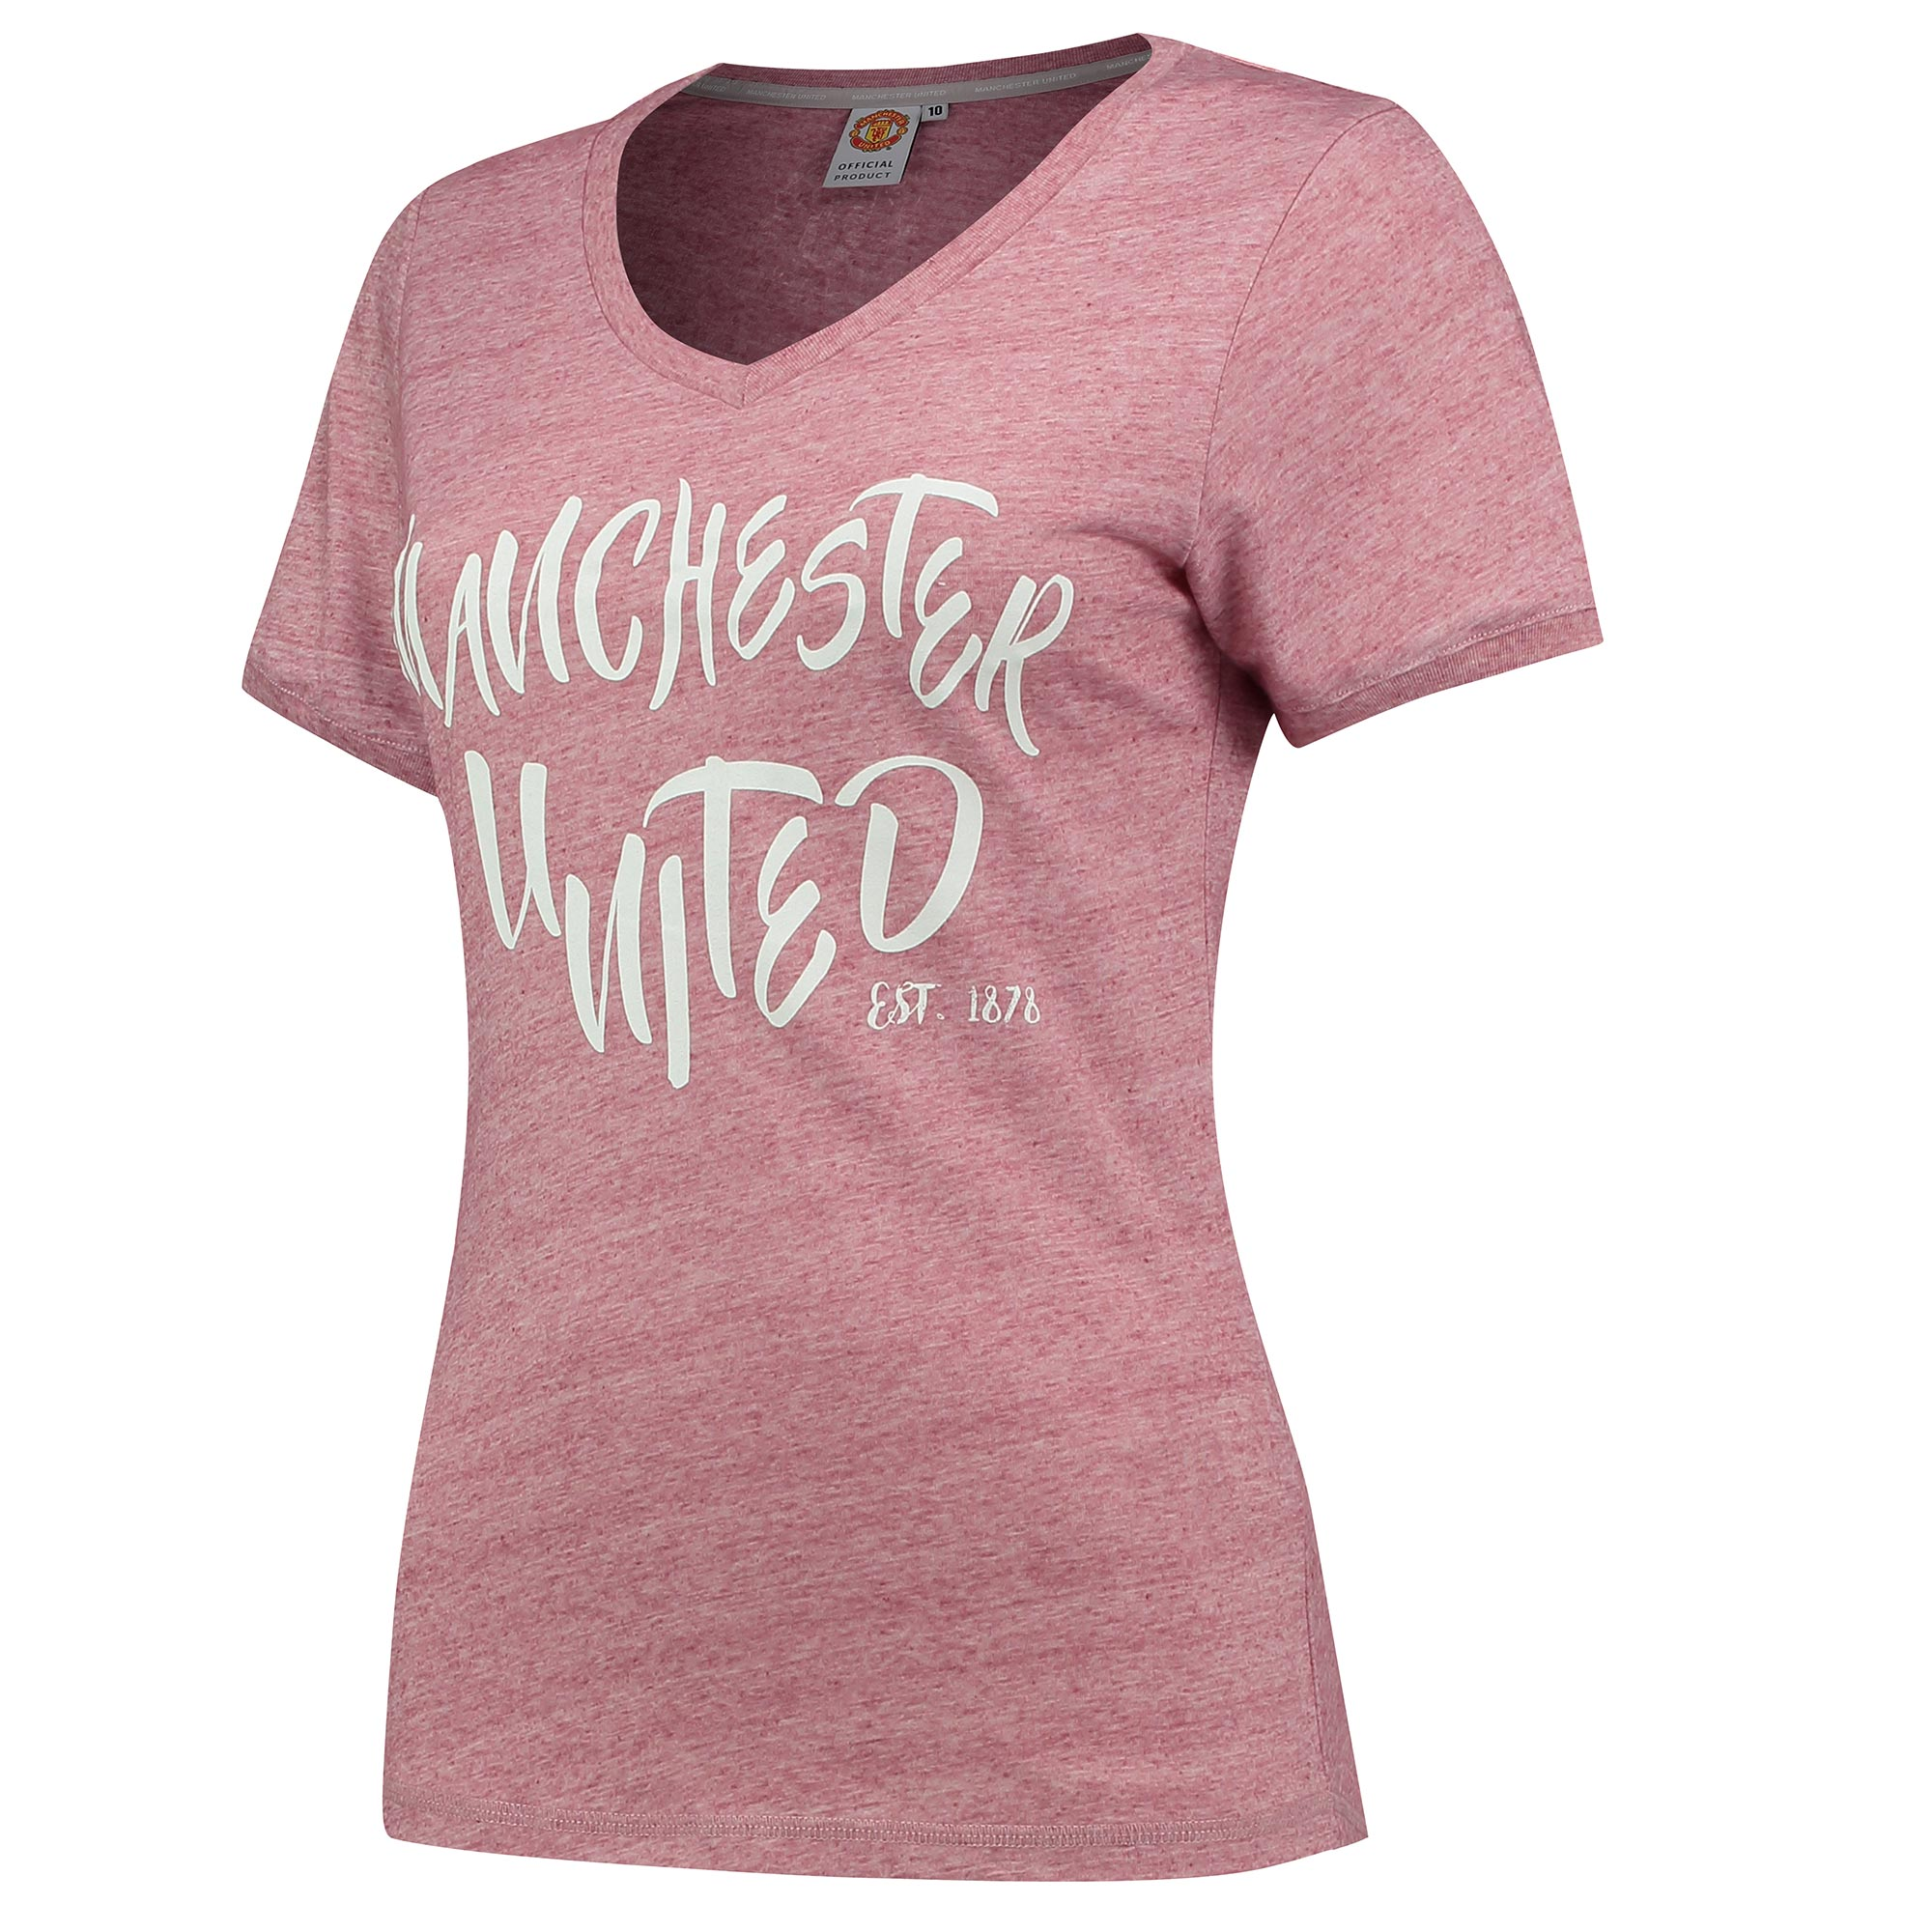 Manchester United Casual V Neck T-Shirt - Pink - Womens